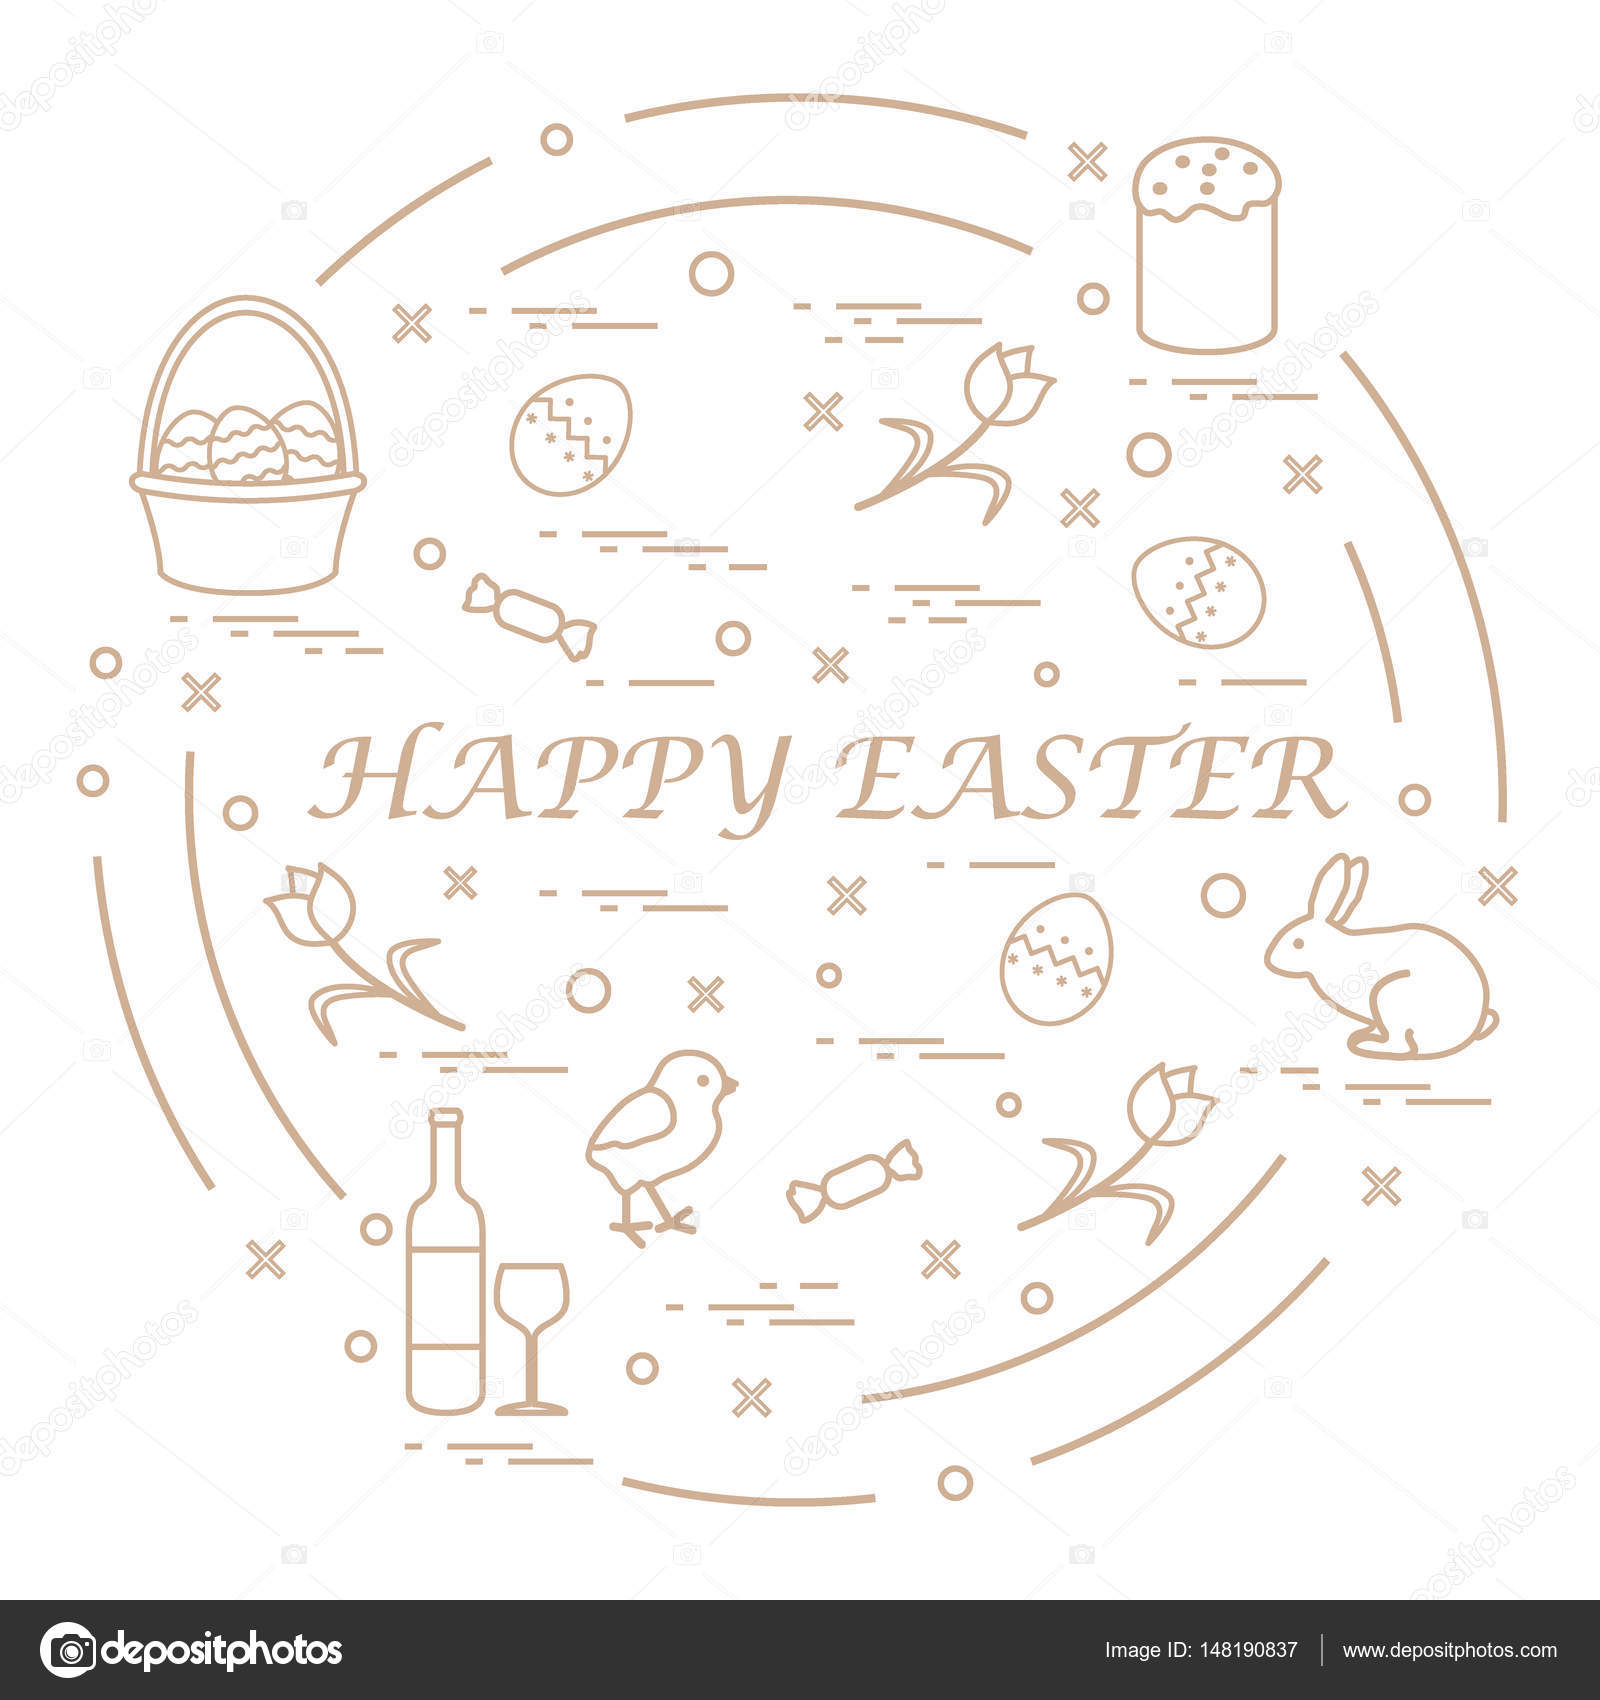 Cute vector illustration with different symbols for easter arran cute vector illustration with different symbols for easter arranged in a circle including icons of easter cake chick baskets eggs and other buycottarizona